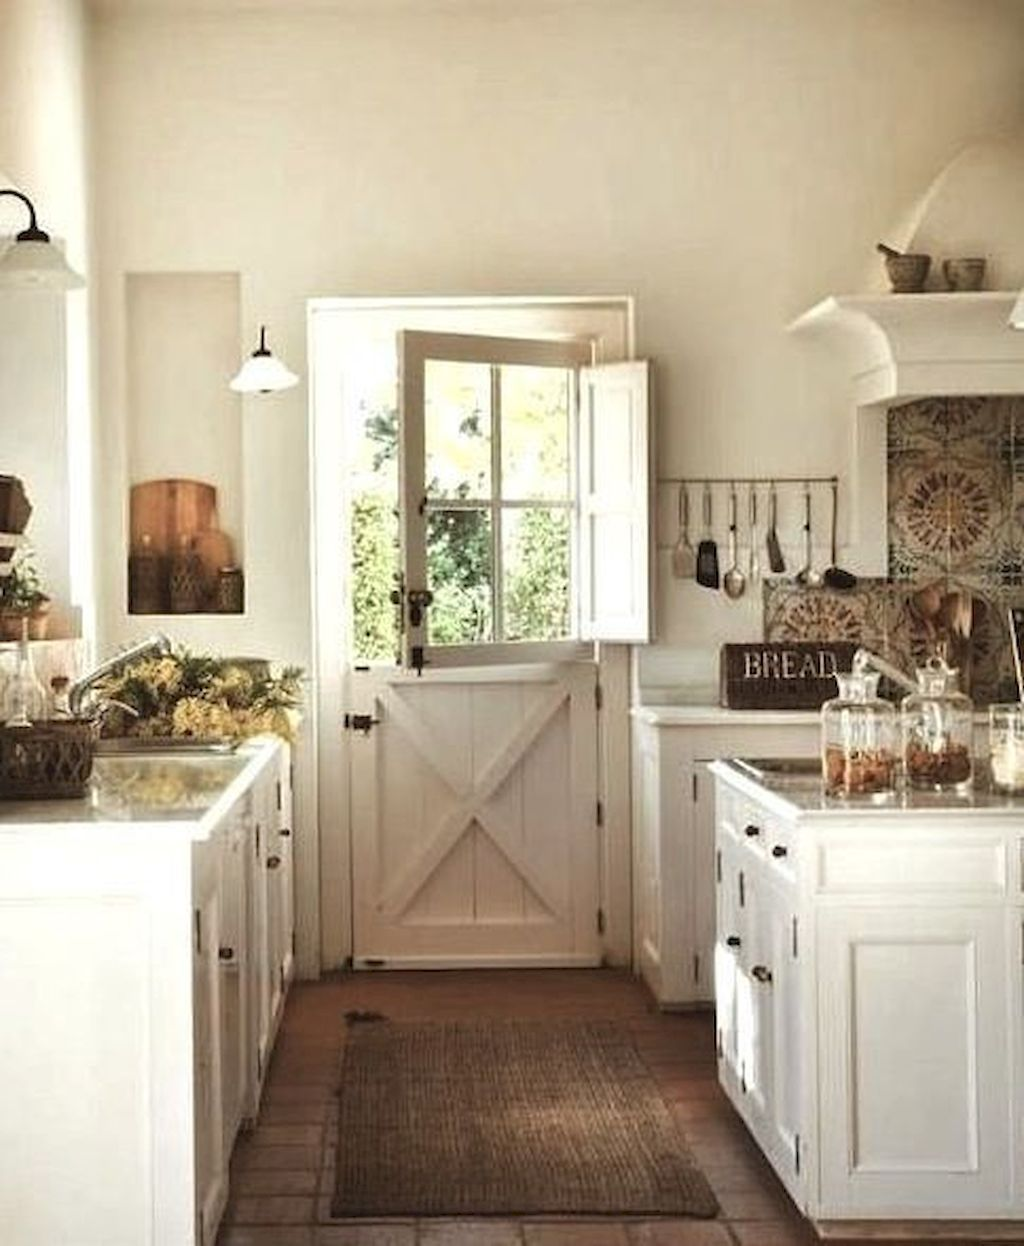 100 Stunning Farmhouse Kitchen Ideas On A Budget (23